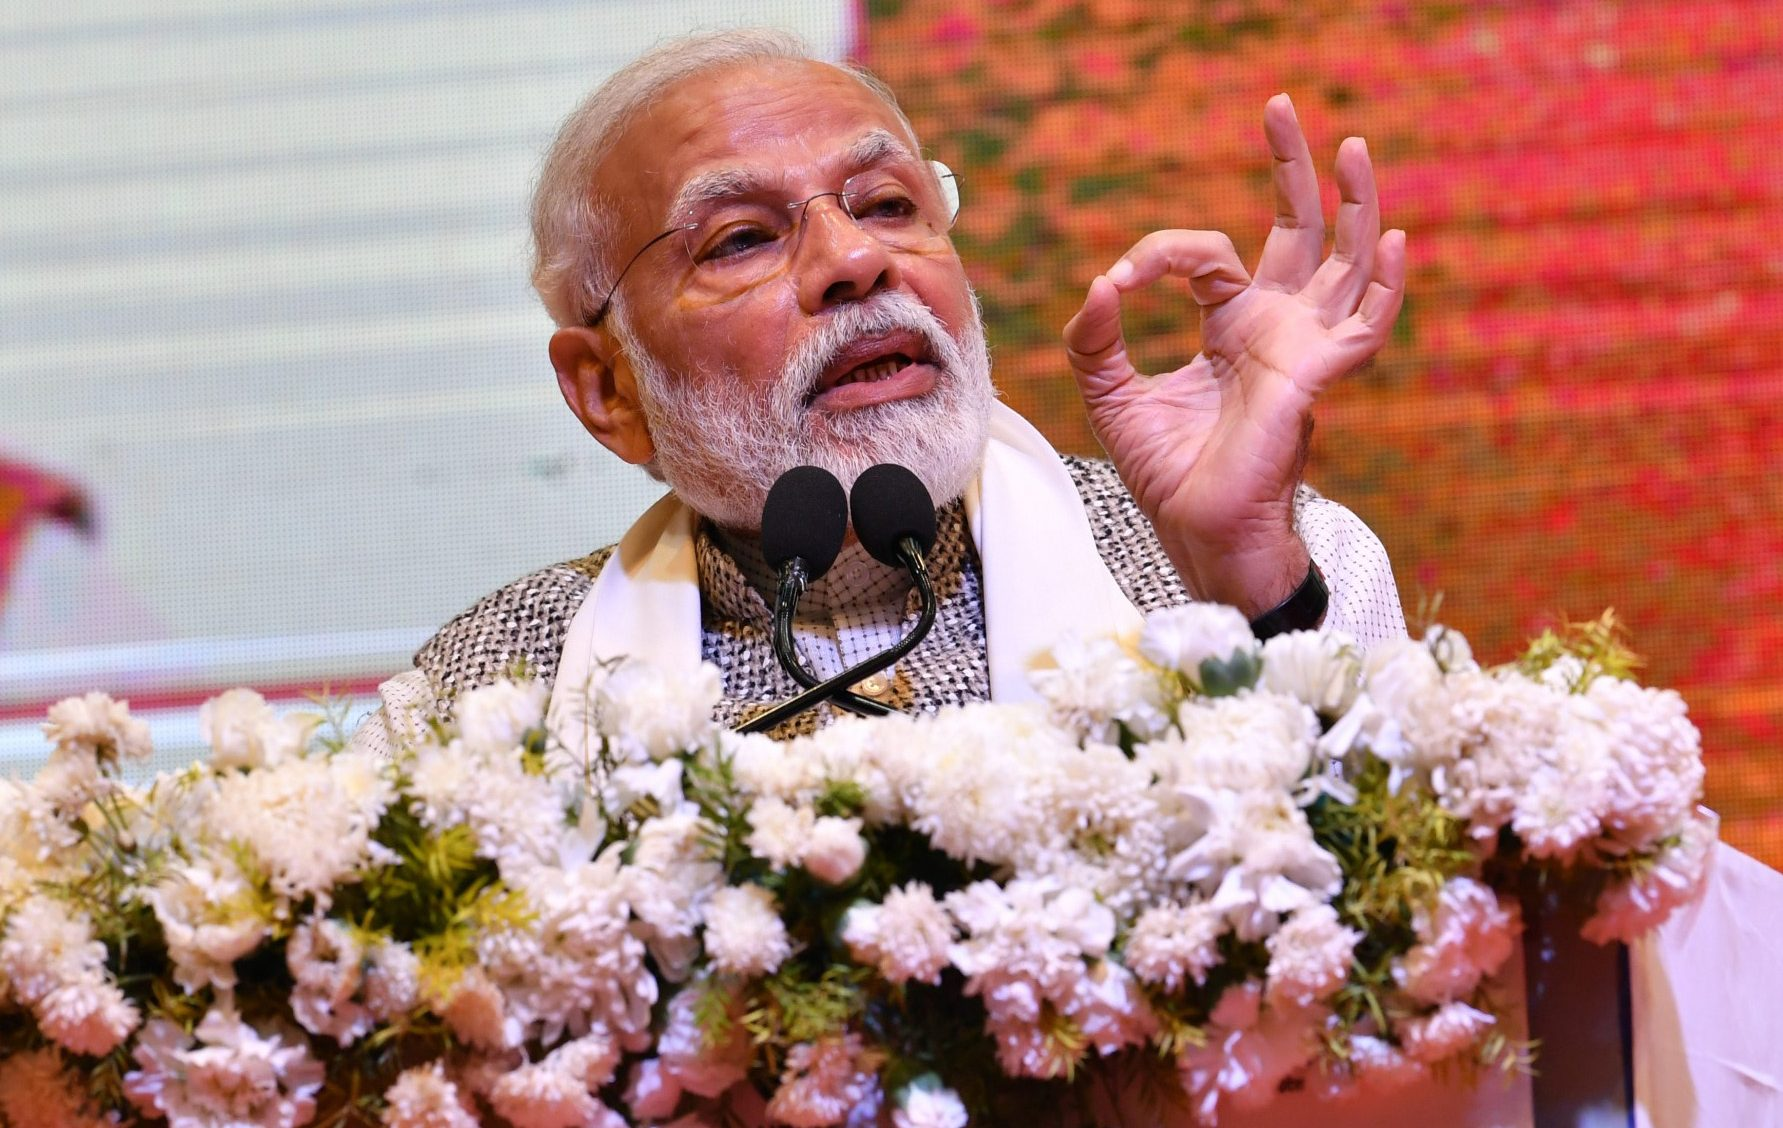 PM's address at 'Kashi Ek Roop Anek' event in Varanasi